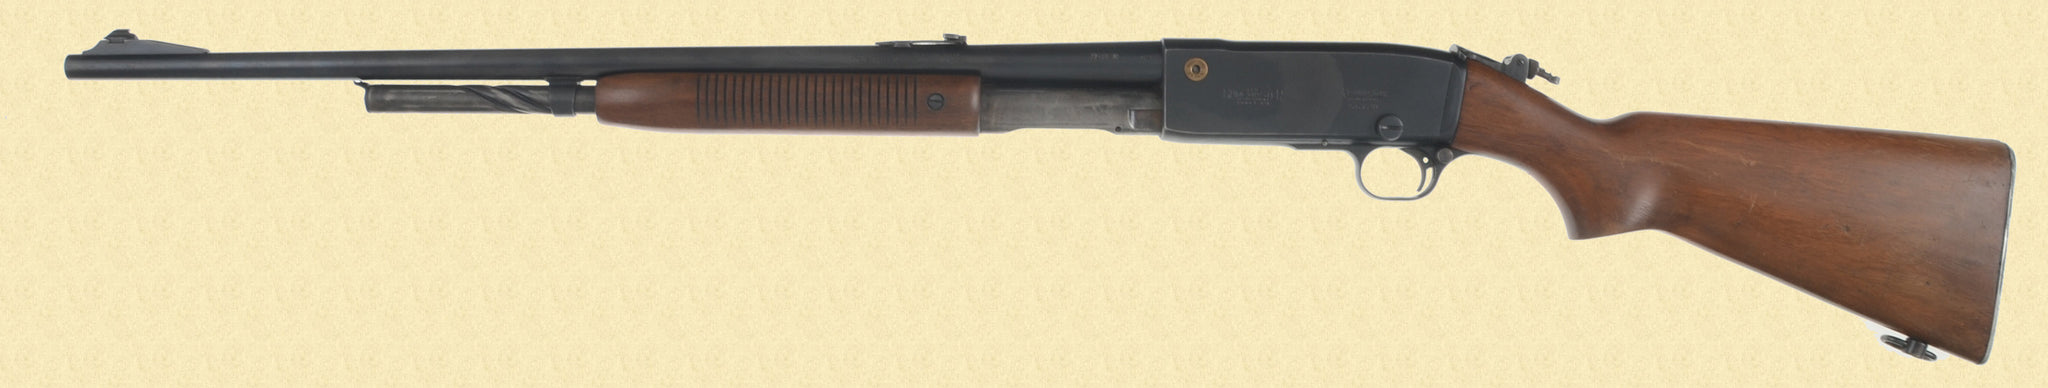 REMINGTON GAMEMASTER MODEL 141